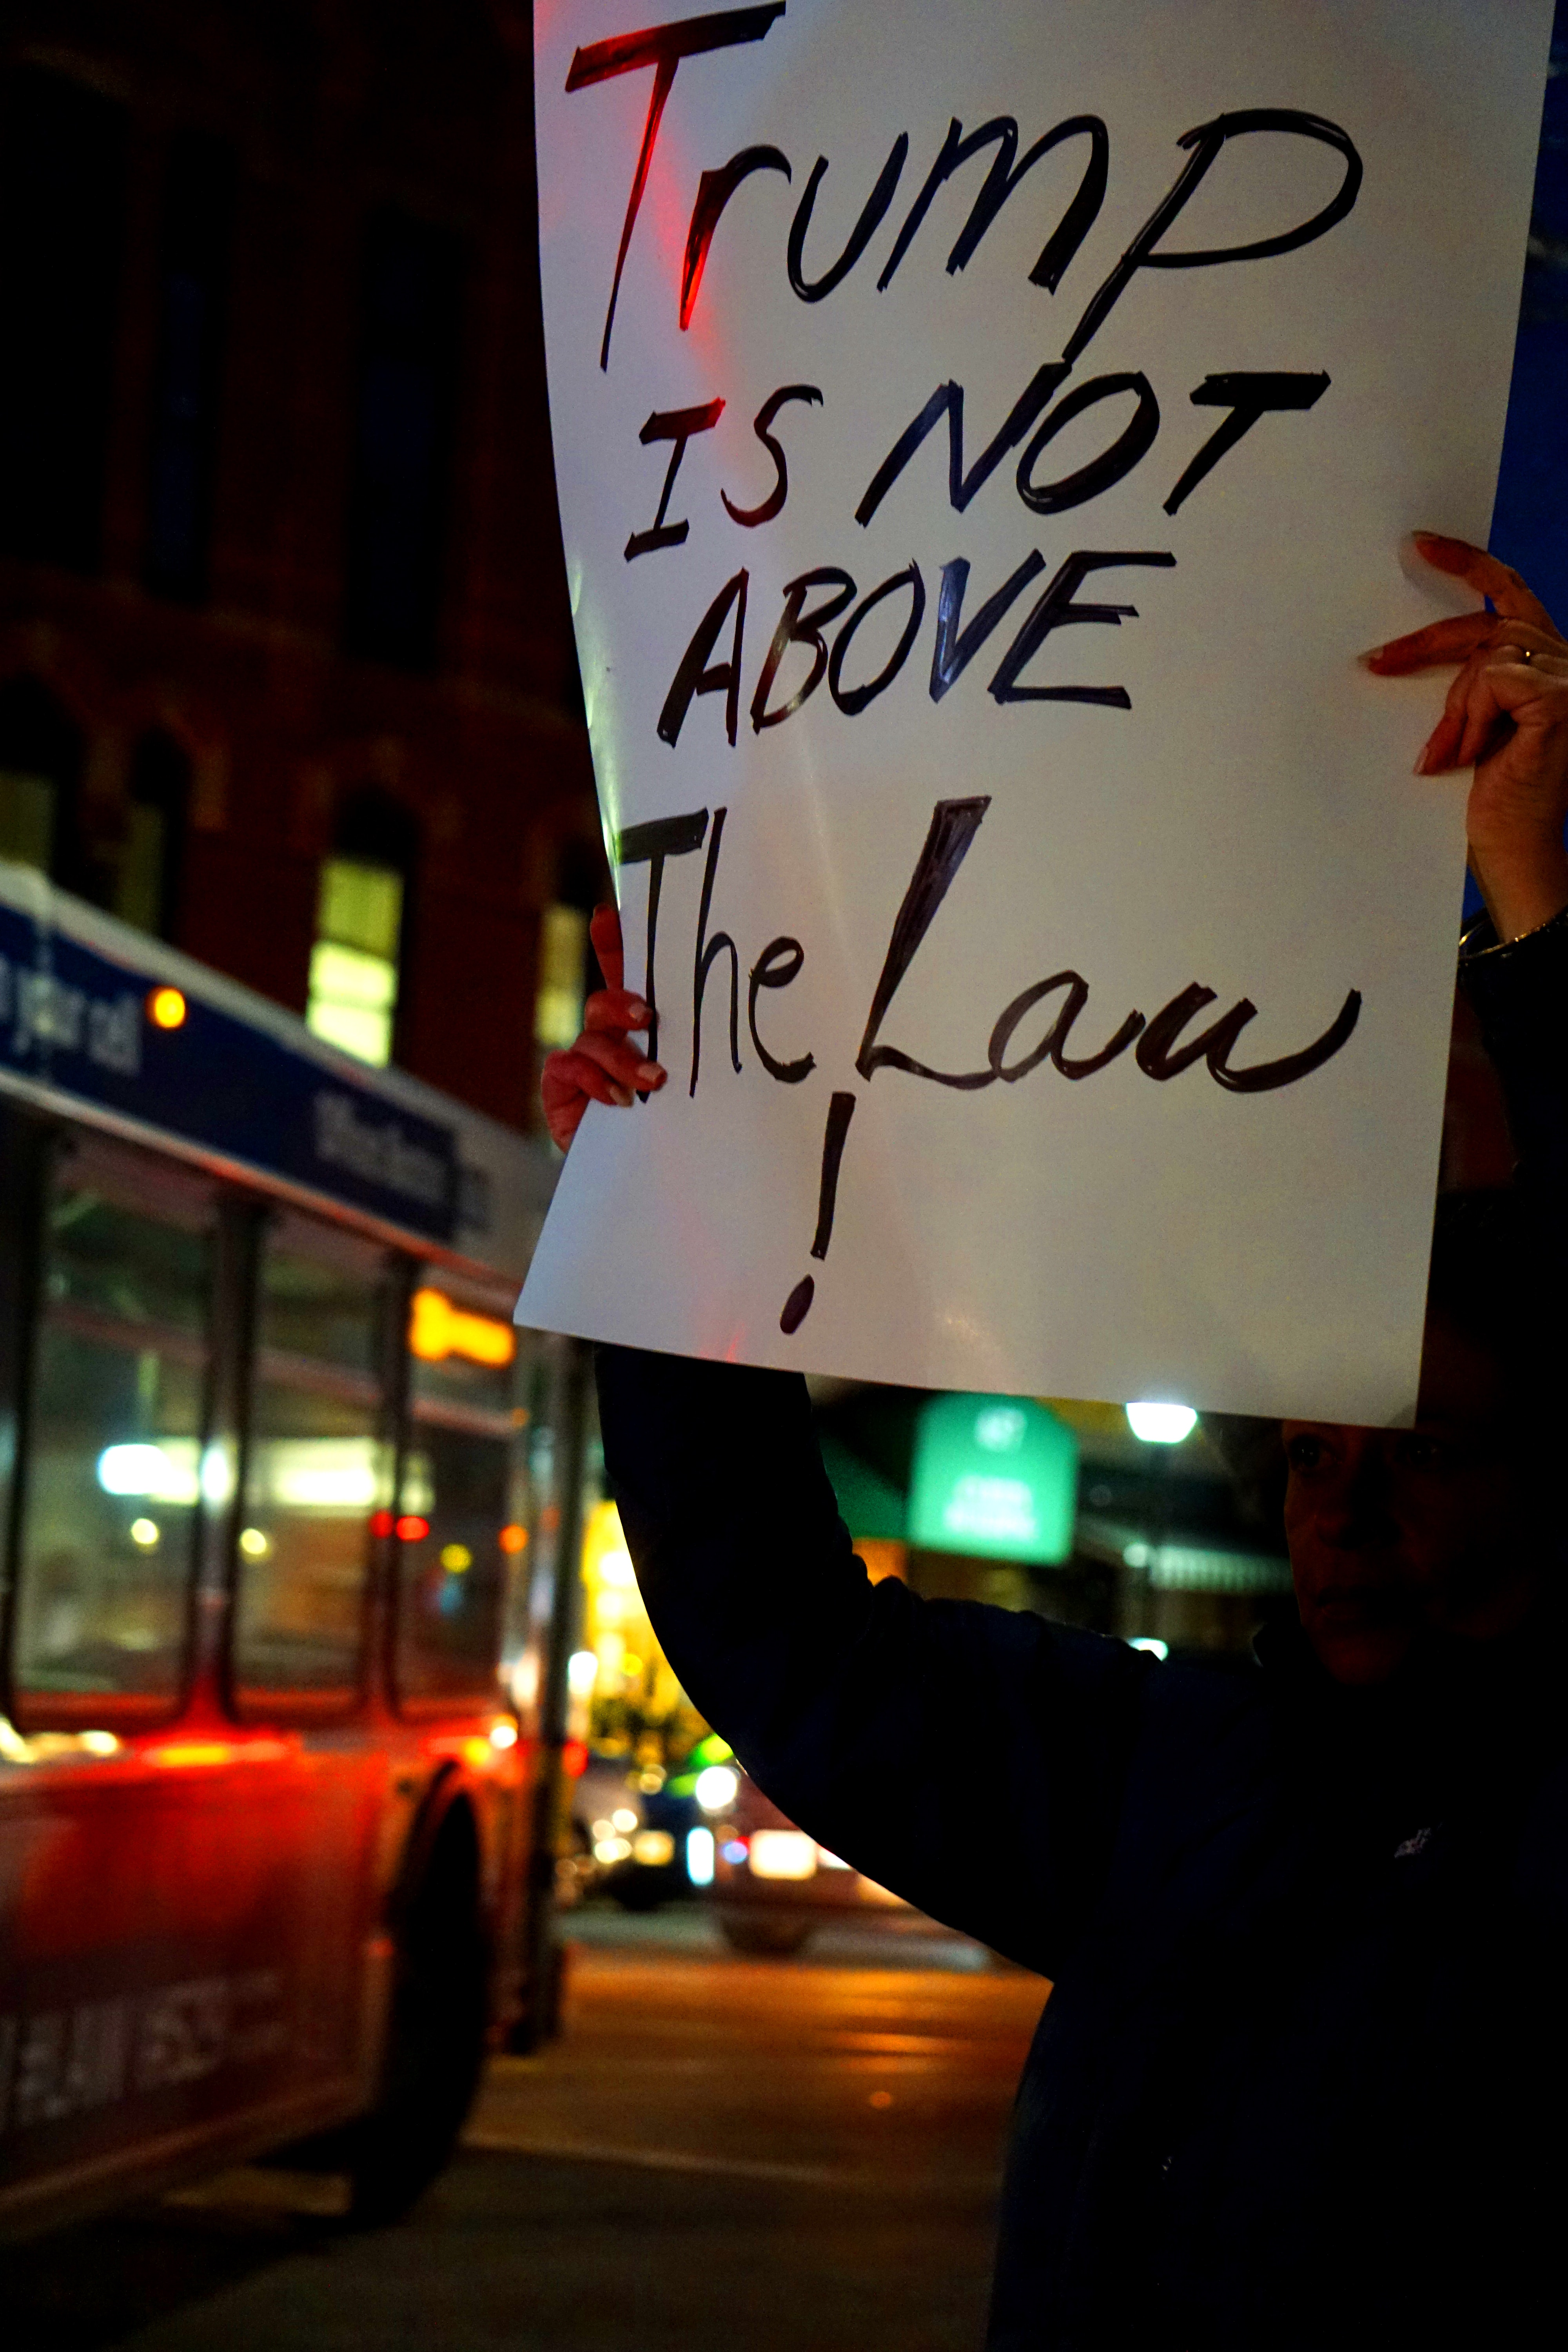 """Trump is not above The Law"" sign / Photo credit: LS d'Avalonia on Unplash"